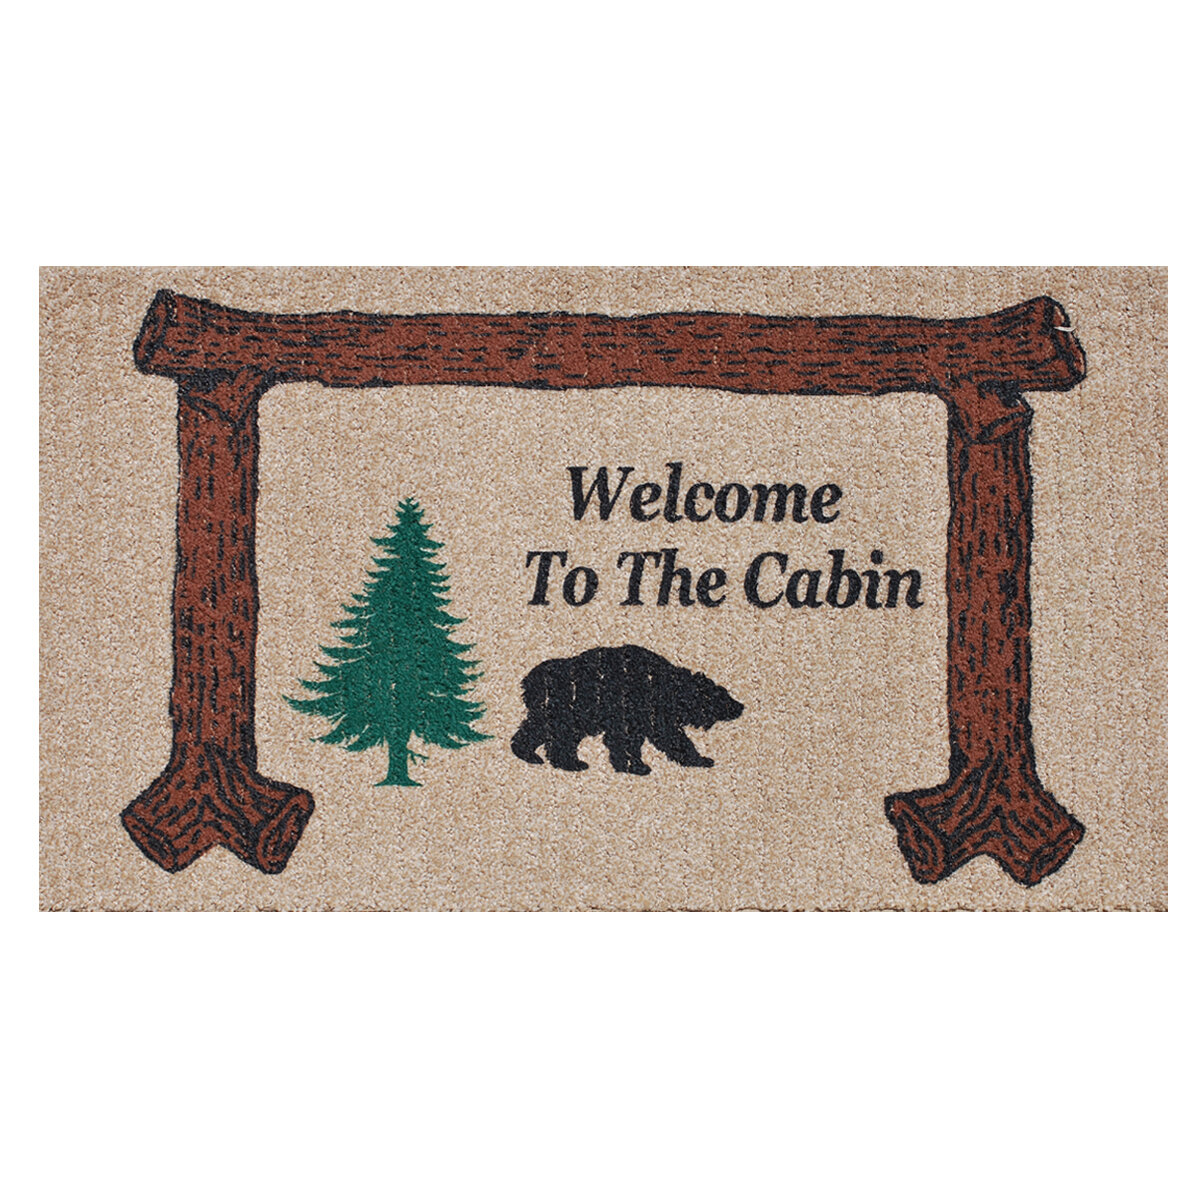 Charmant Home U0026 More Welcome To The Cabin Doormat U0026 Reviews | Wayfair